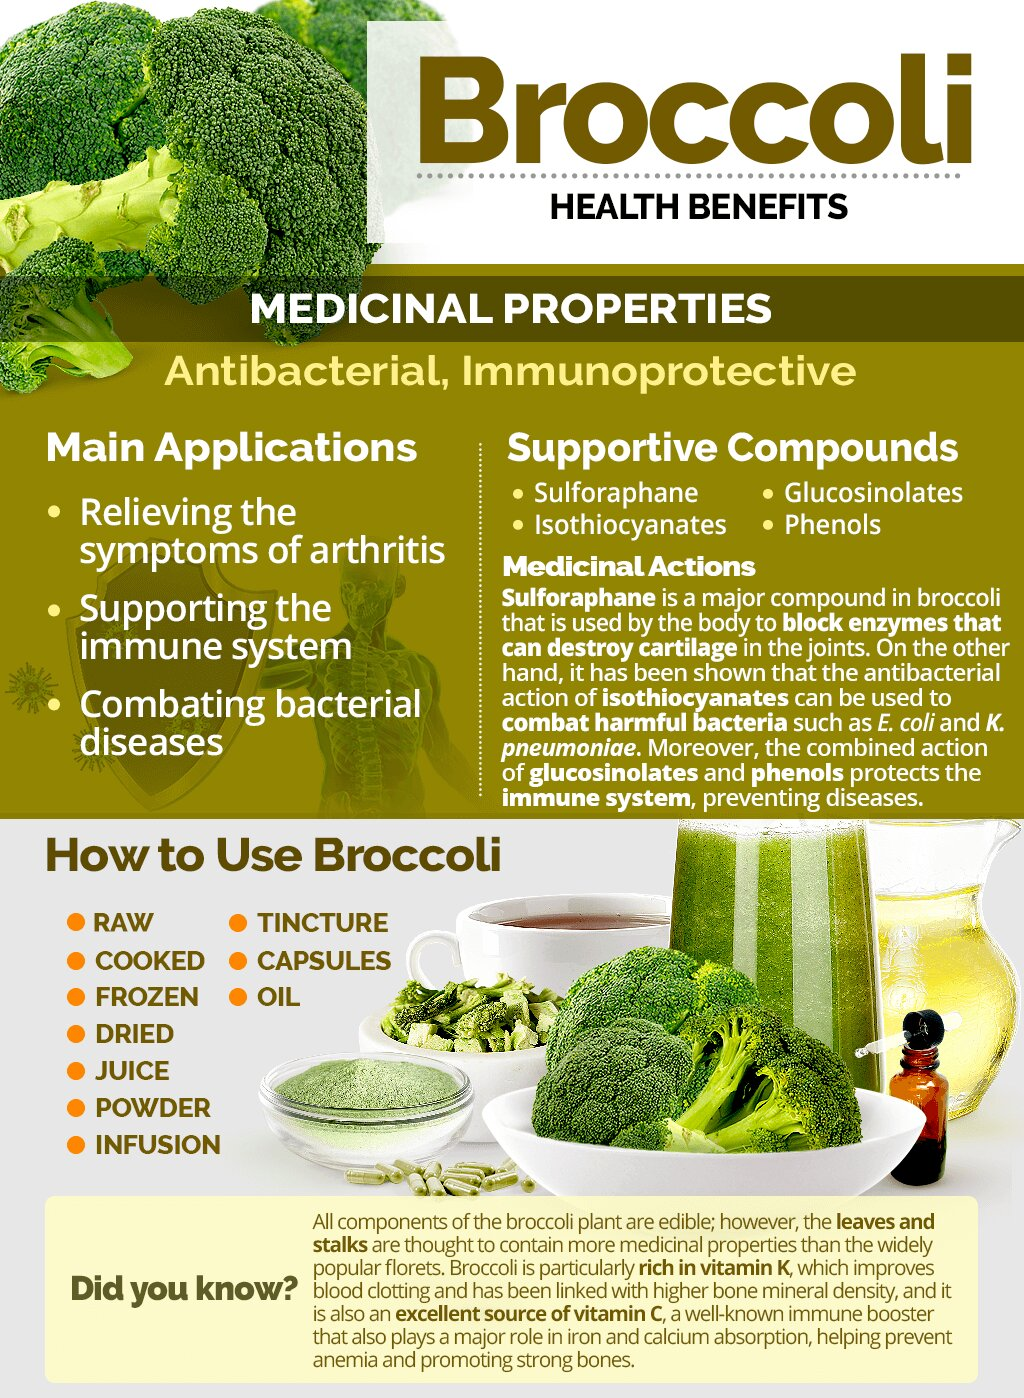 13 Advantages and Benefits of Using Broccoli in your Diet